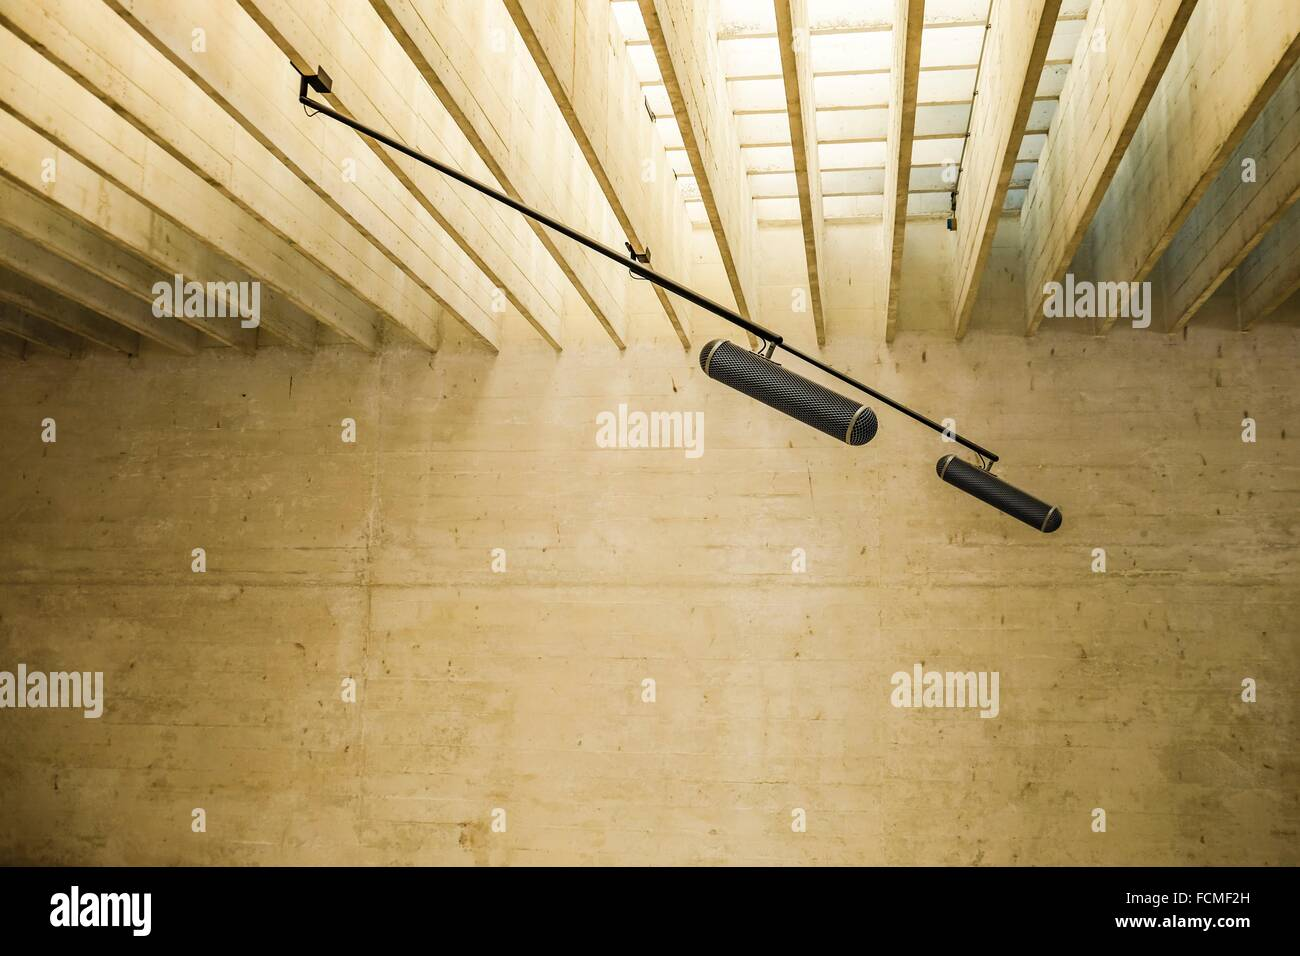 Microphones in empty space. - Stock Image